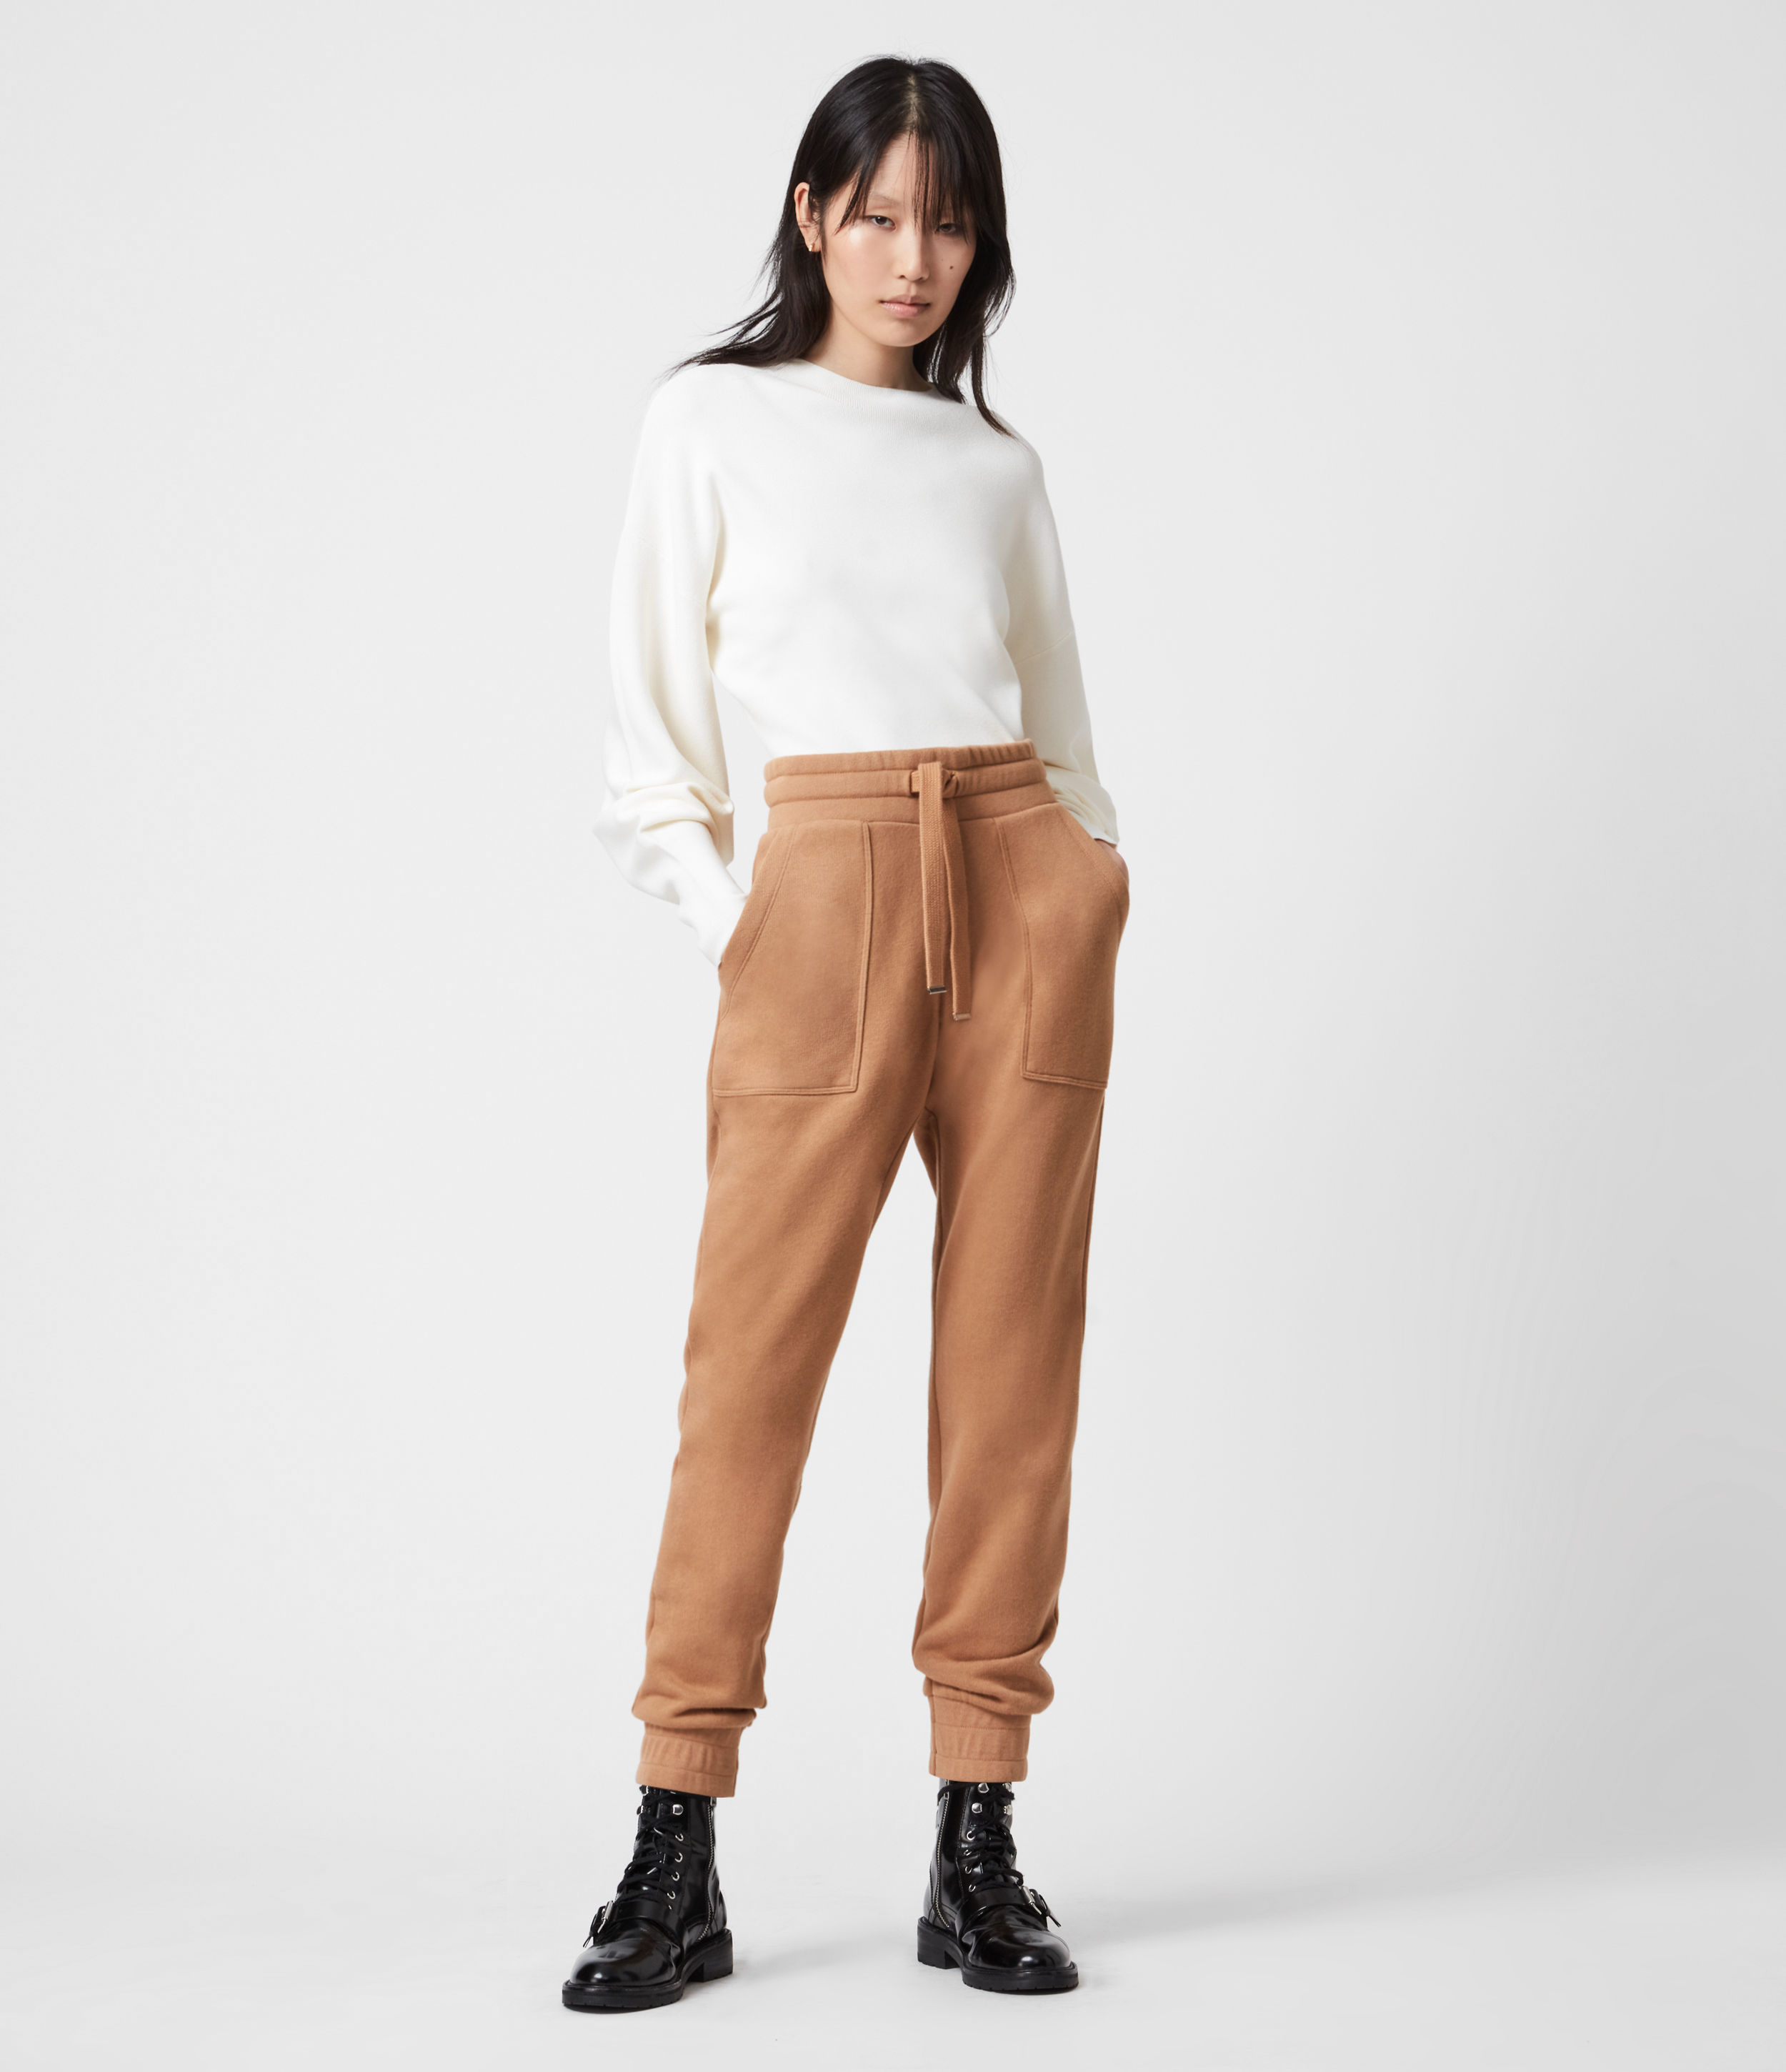 AllSaints Women's Cotton Relaxed Fit Lucia Cuffed Sweatpants, Brown, Size: 10